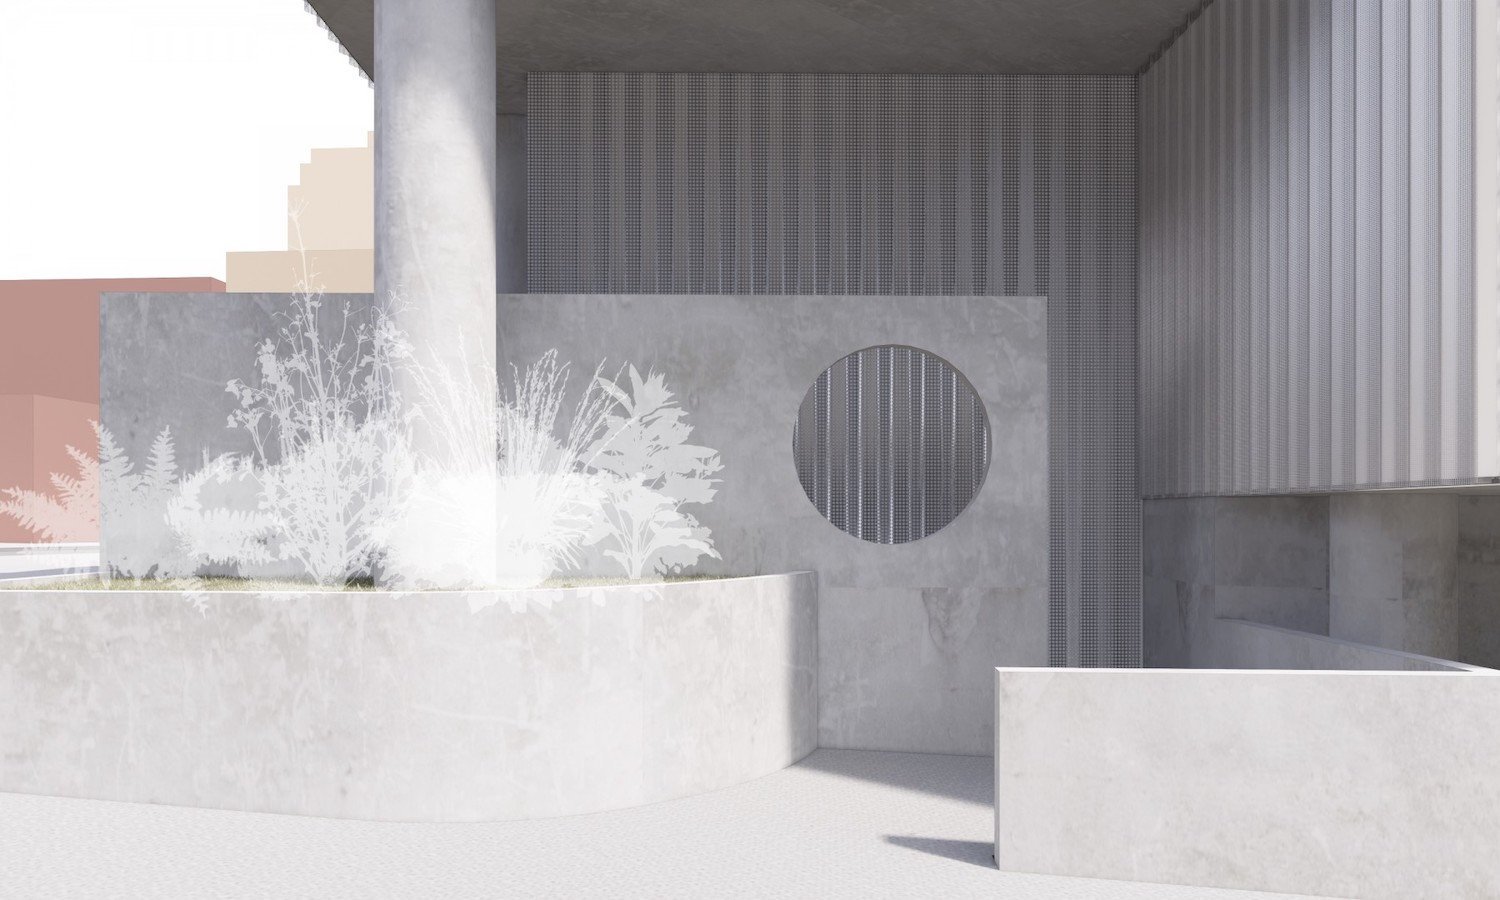 Rendering of Entrance at 219 Jay Street. Courtesy of Tankhouse Development